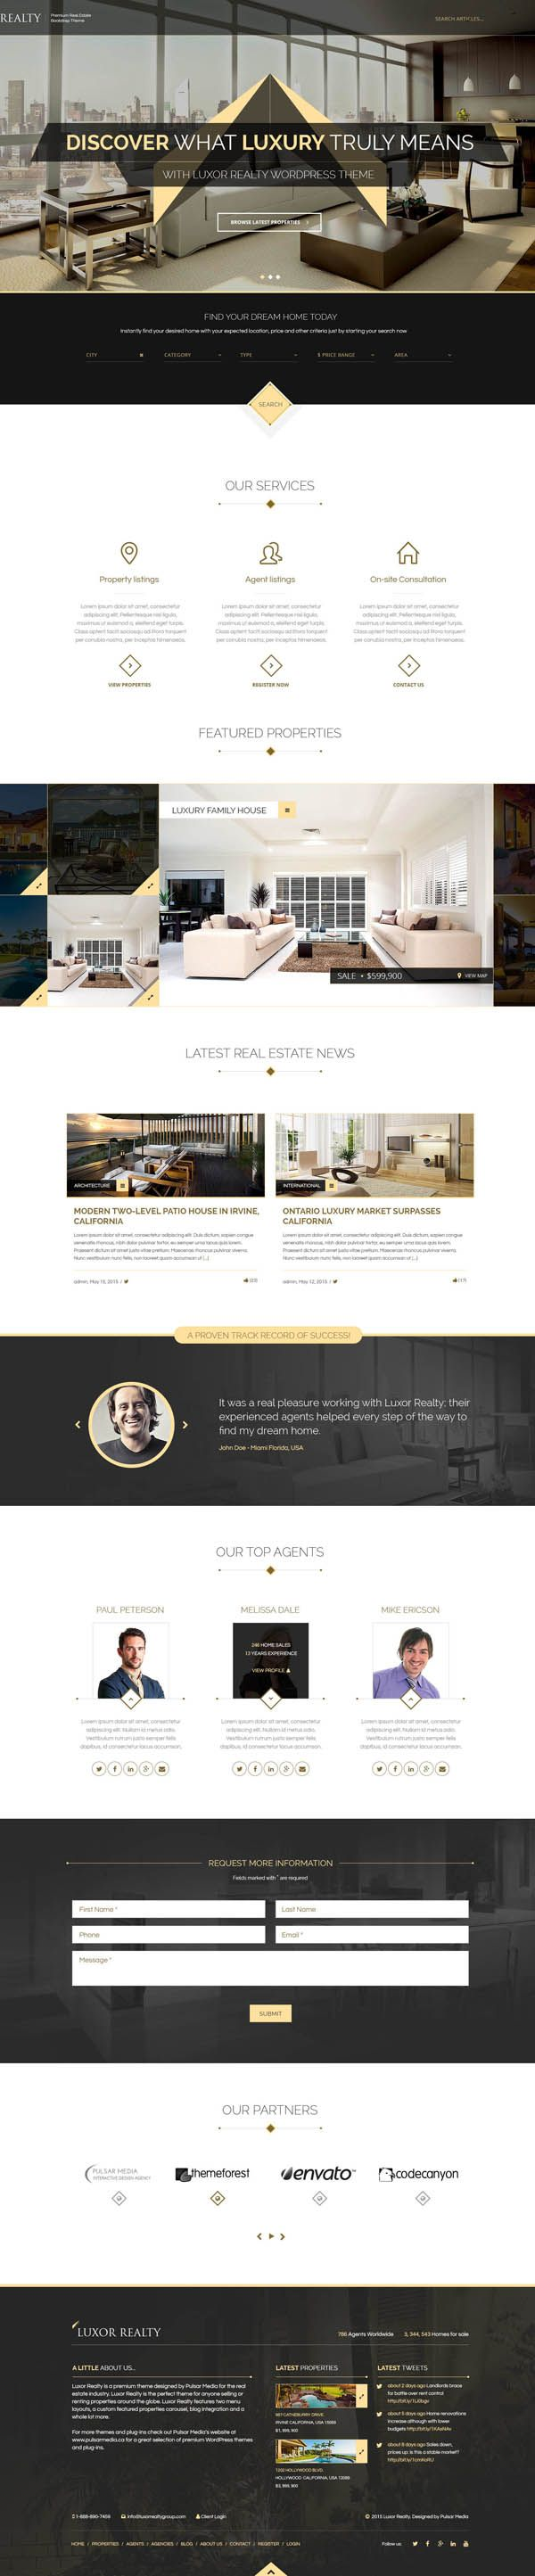 LUXOR - Responsive HTML5 Real Estate Template http://themeforest.net/item/luxor-responsive-html5-real-estate-template/13127277?ref=graphicdesignjunction